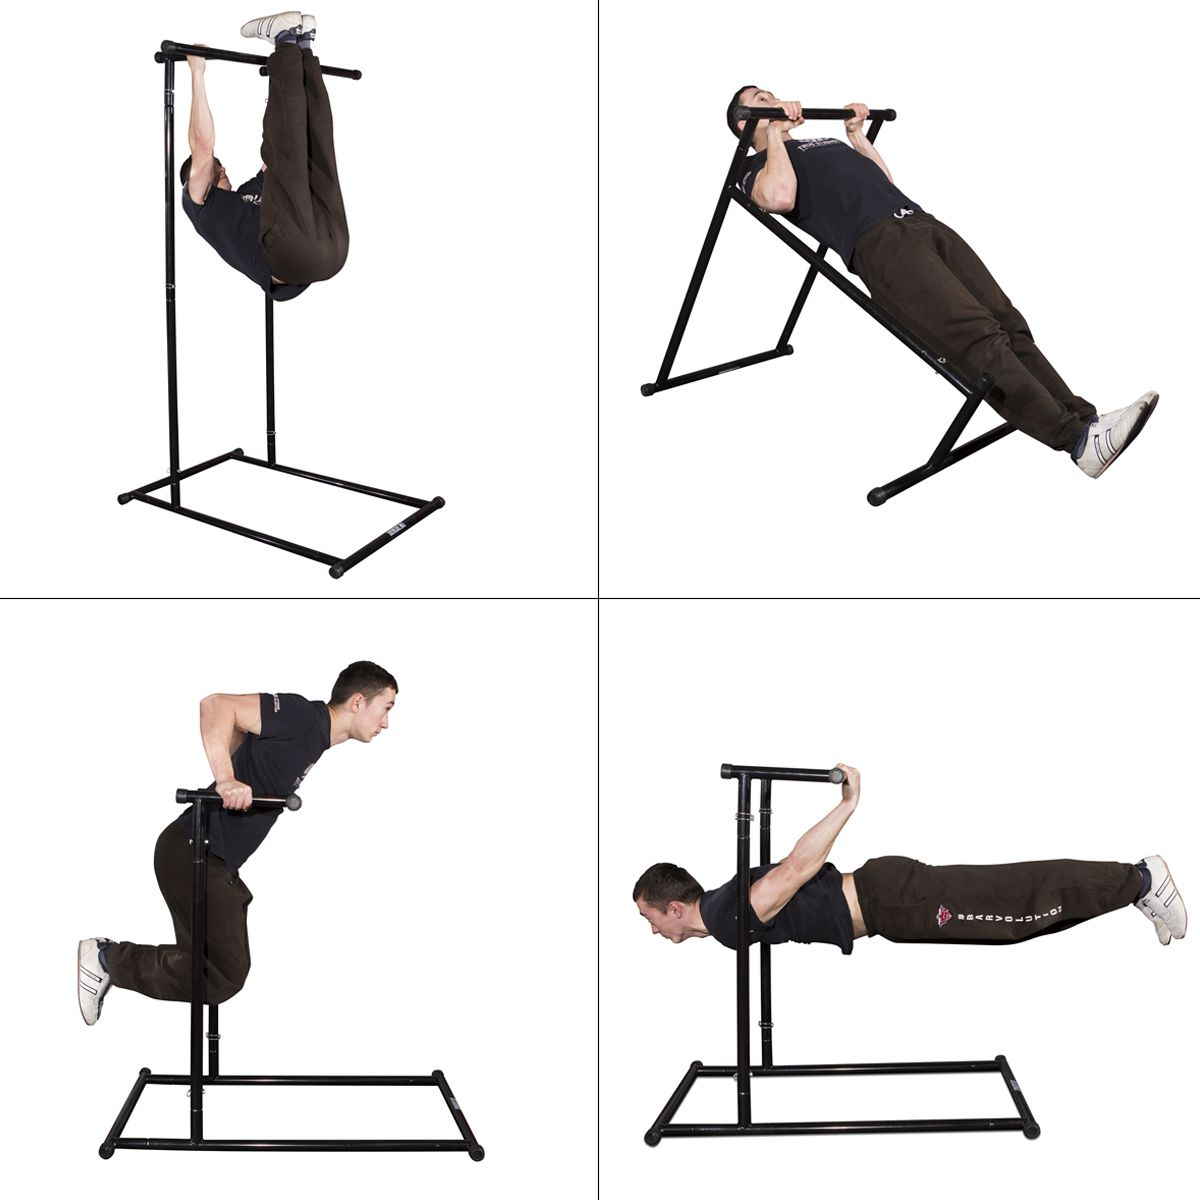 The Gravity Fitness Portable Bodyweight & Pull up Rack has